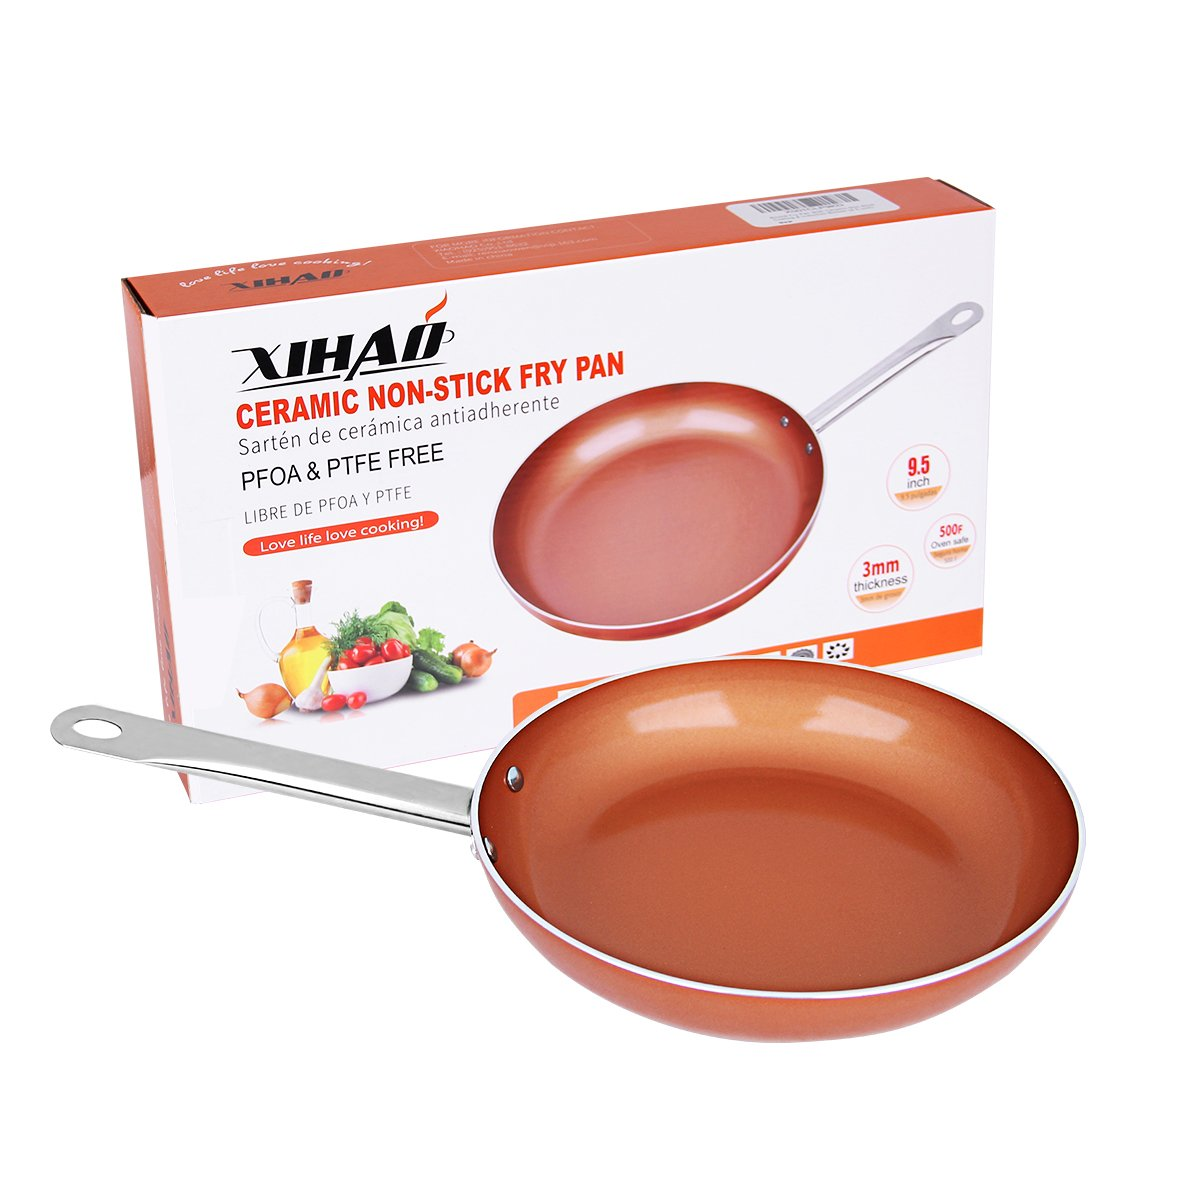 Skillet Frying Pan Copper Ceramic Nonstick 9.5 Inch Induction Bottom XIHAO Oven Safe Dishwasher Safe Aluminum Chef Cookware Fry Pan